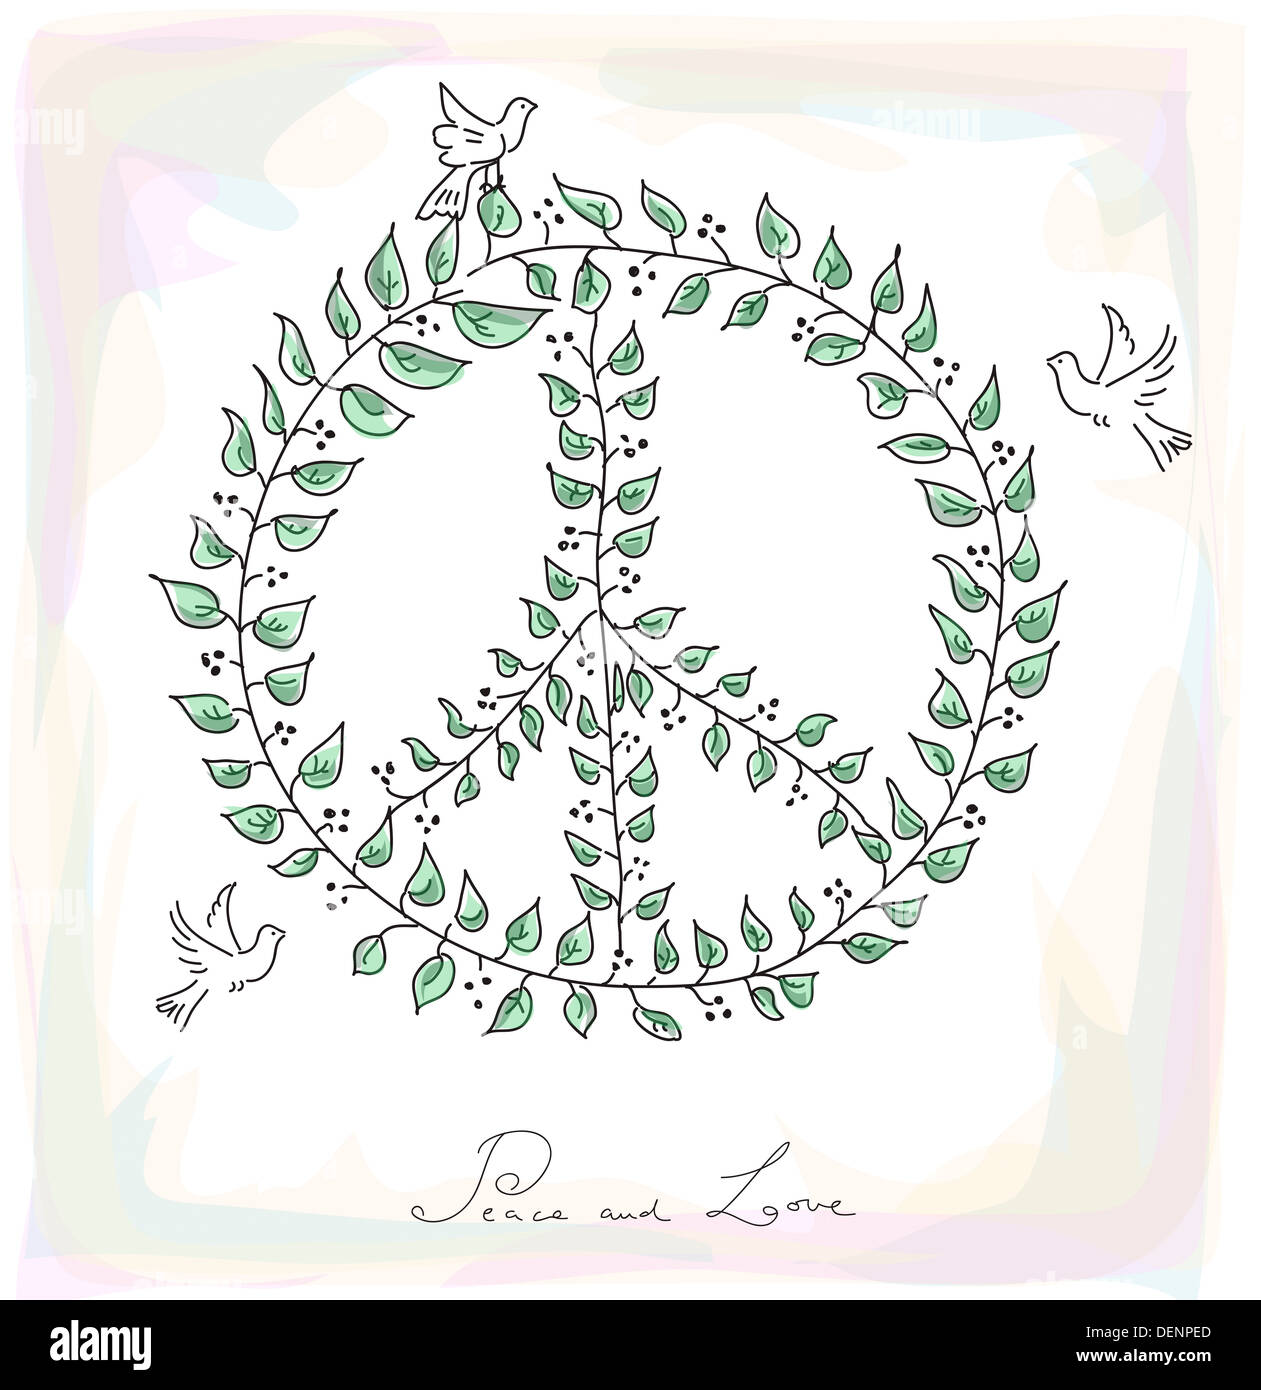 Sketch style peace and love composition leaf made symbol and dove sketch style peace and love composition leaf made symbol and dove birds over texture background eps10 vector file organized in layers for easy editi buycottarizona